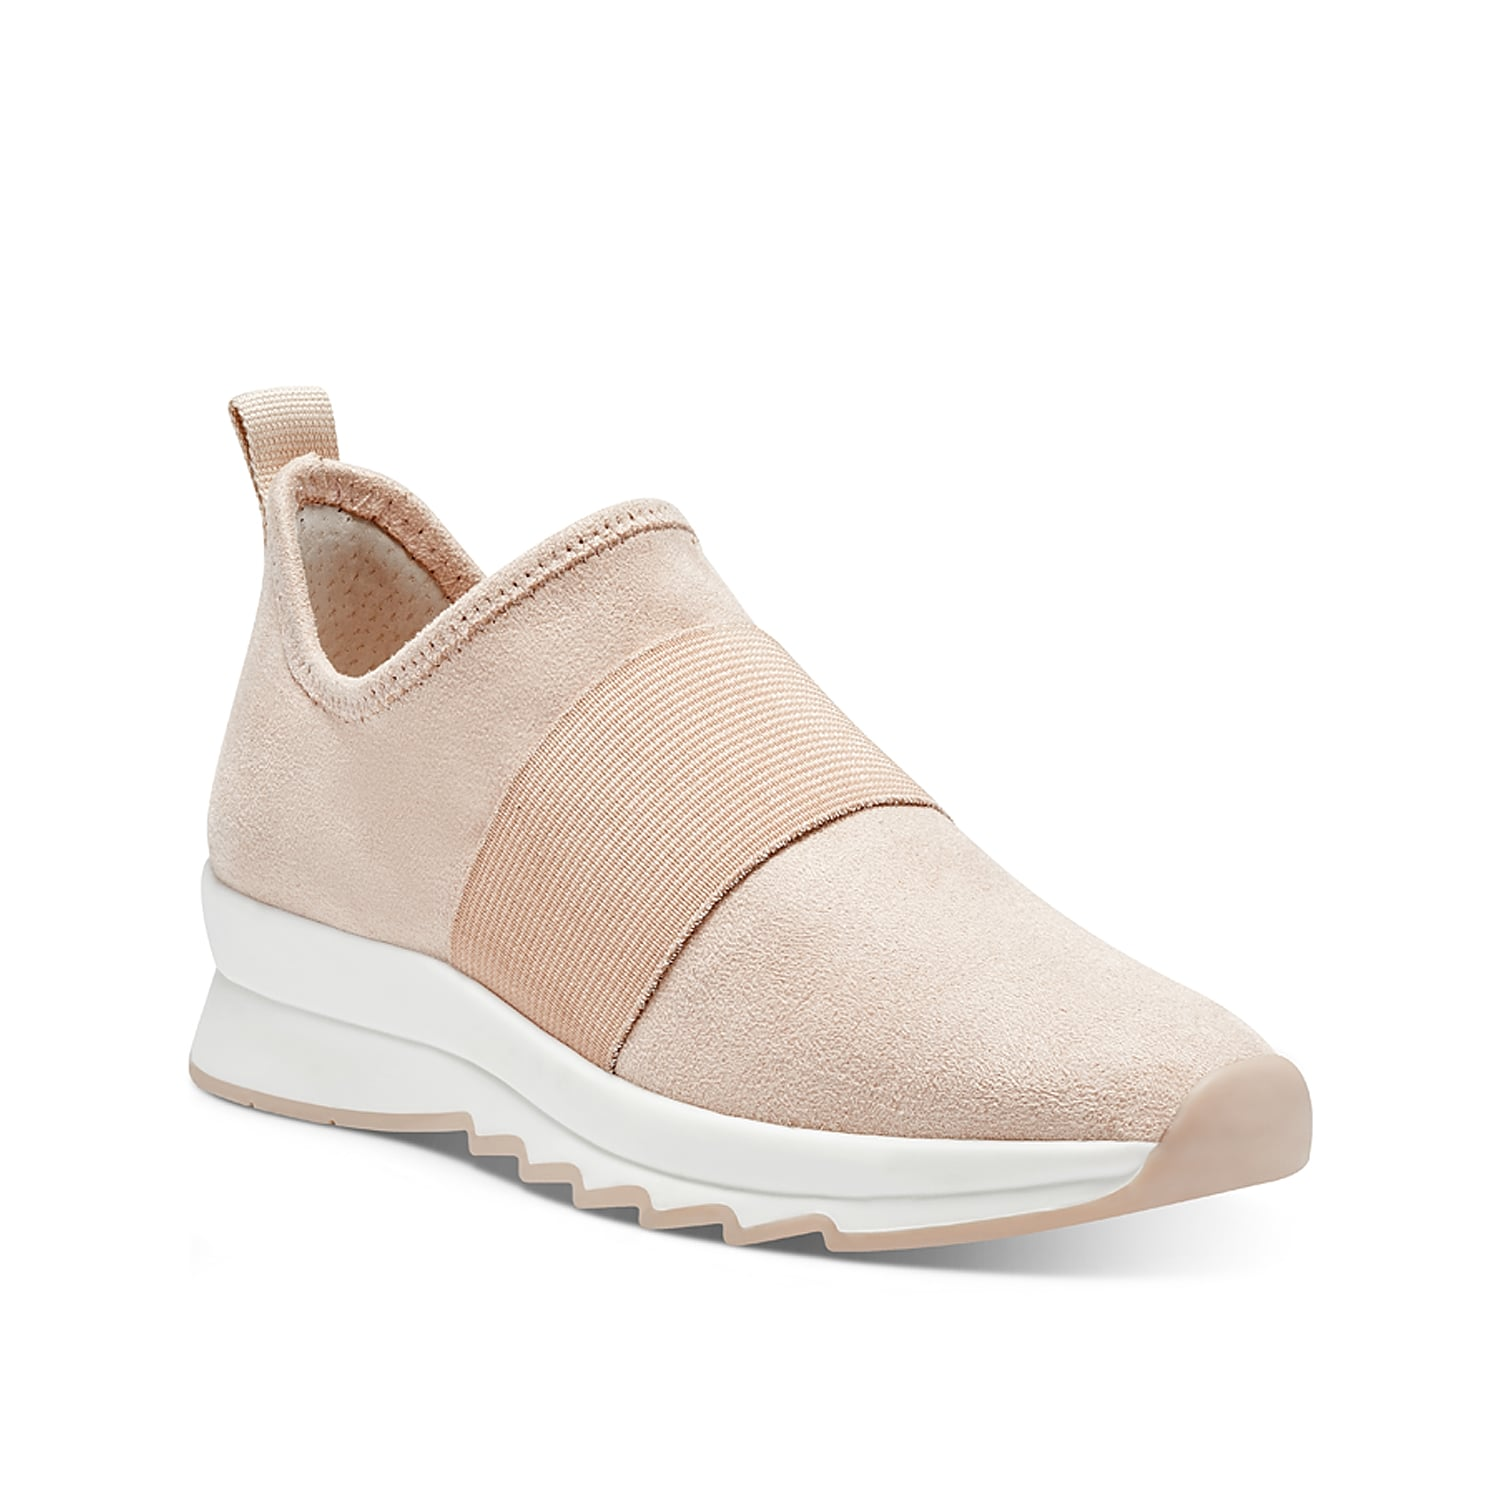 Take athleisure looks to the next level with the Kesaris slip-on sneaker from Sole Society. With a sporty elastic band across the vamp and sawtooth-inspired sole, this pair will upgrade your sweats or shorts.